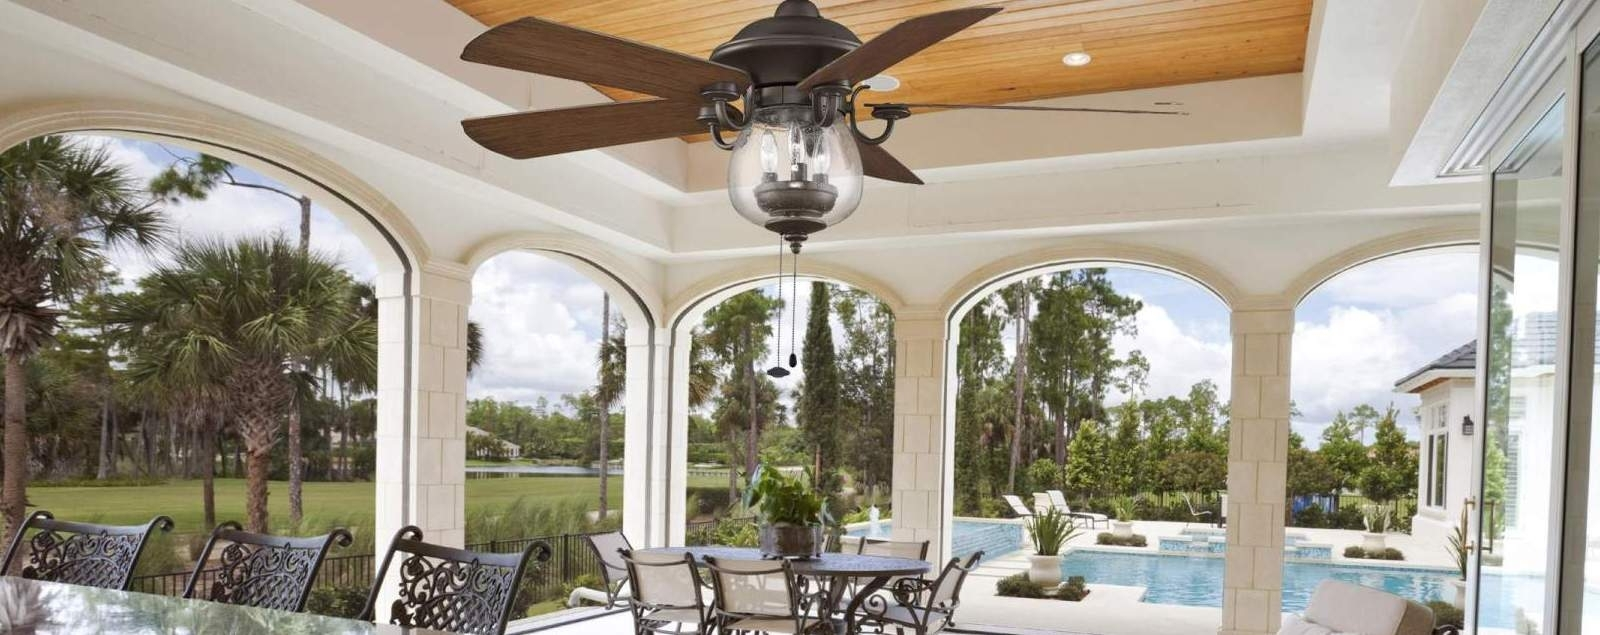 Best And Newest Outdoor Ceiling Fans – Shop Wet, Dry, And Damp Rated Outdoor Fans Intended For Hurricane Outdoor Ceiling Fans (View 2 of 20)